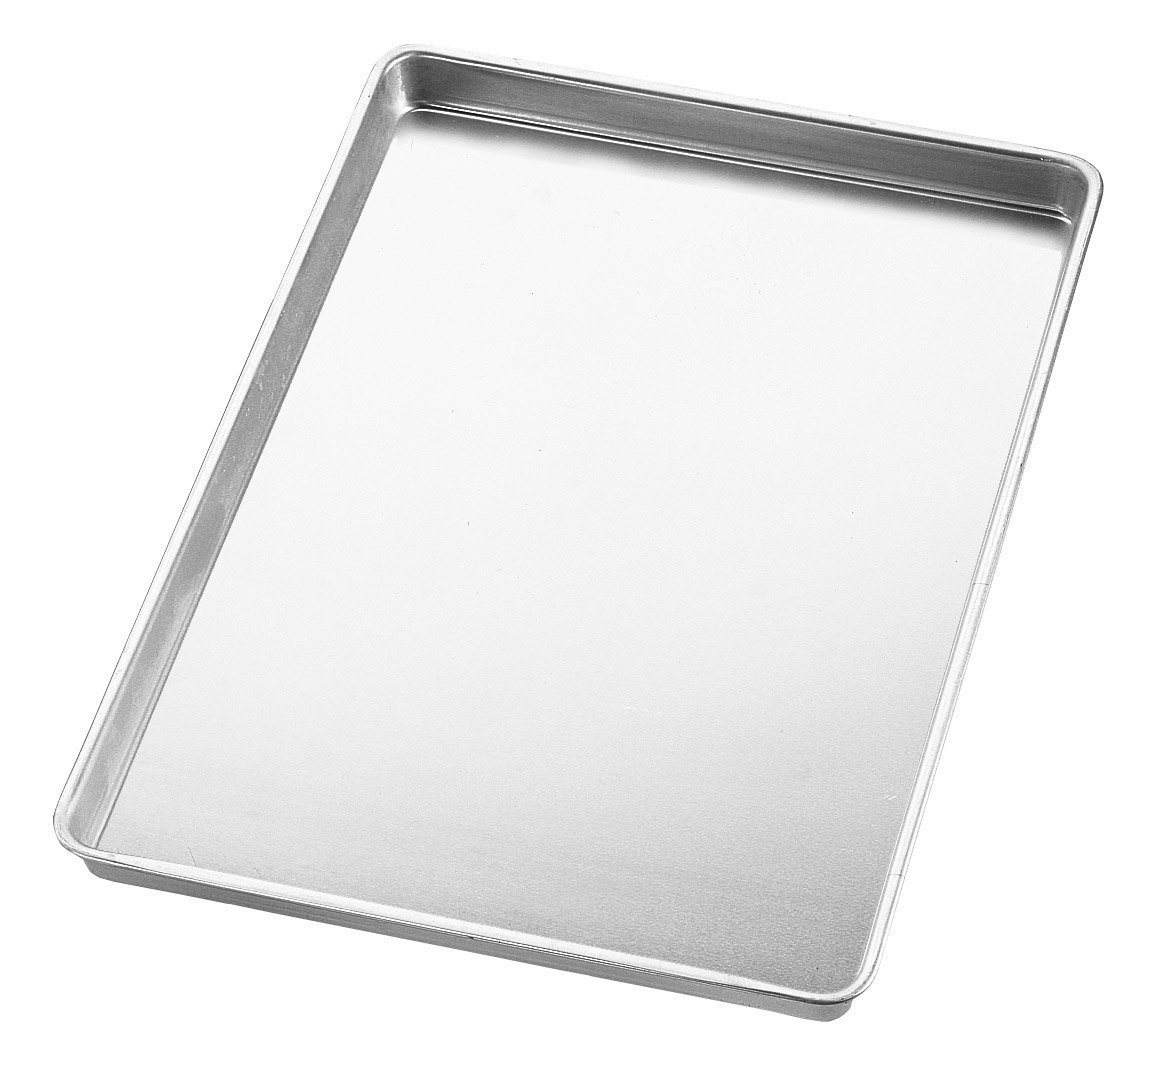 Wilton Performance Pans Jelly Roll Pan, 12 x 18-Inch